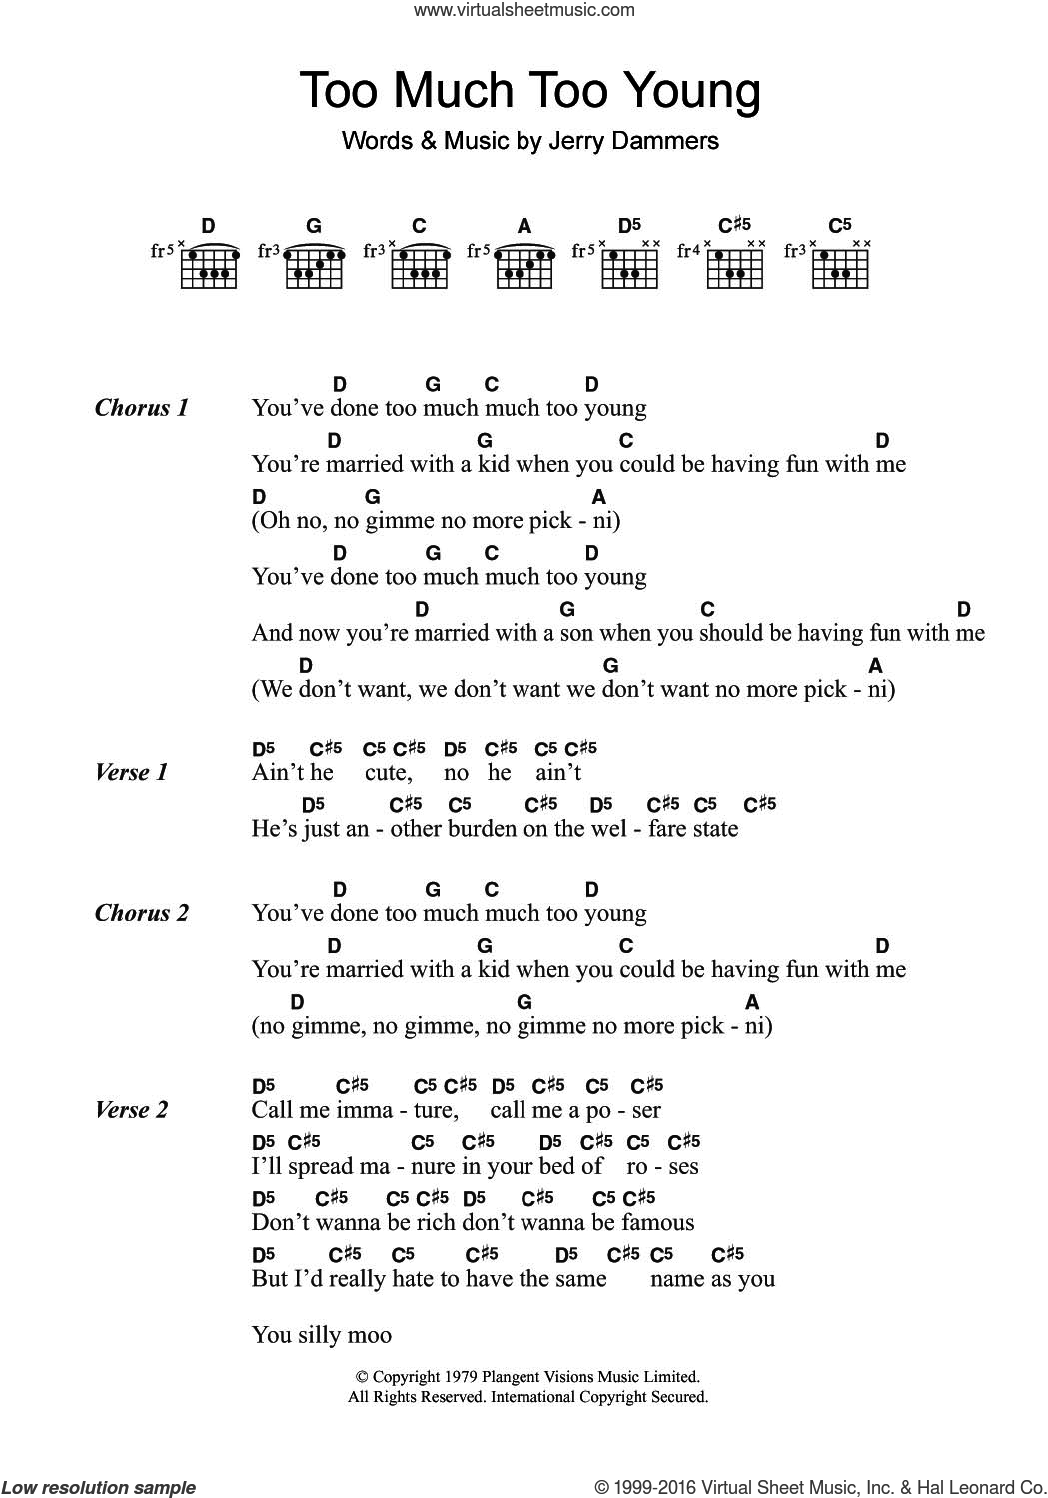 Too Much Too Young sheet music for guitar (chords) by Jerry Dammers